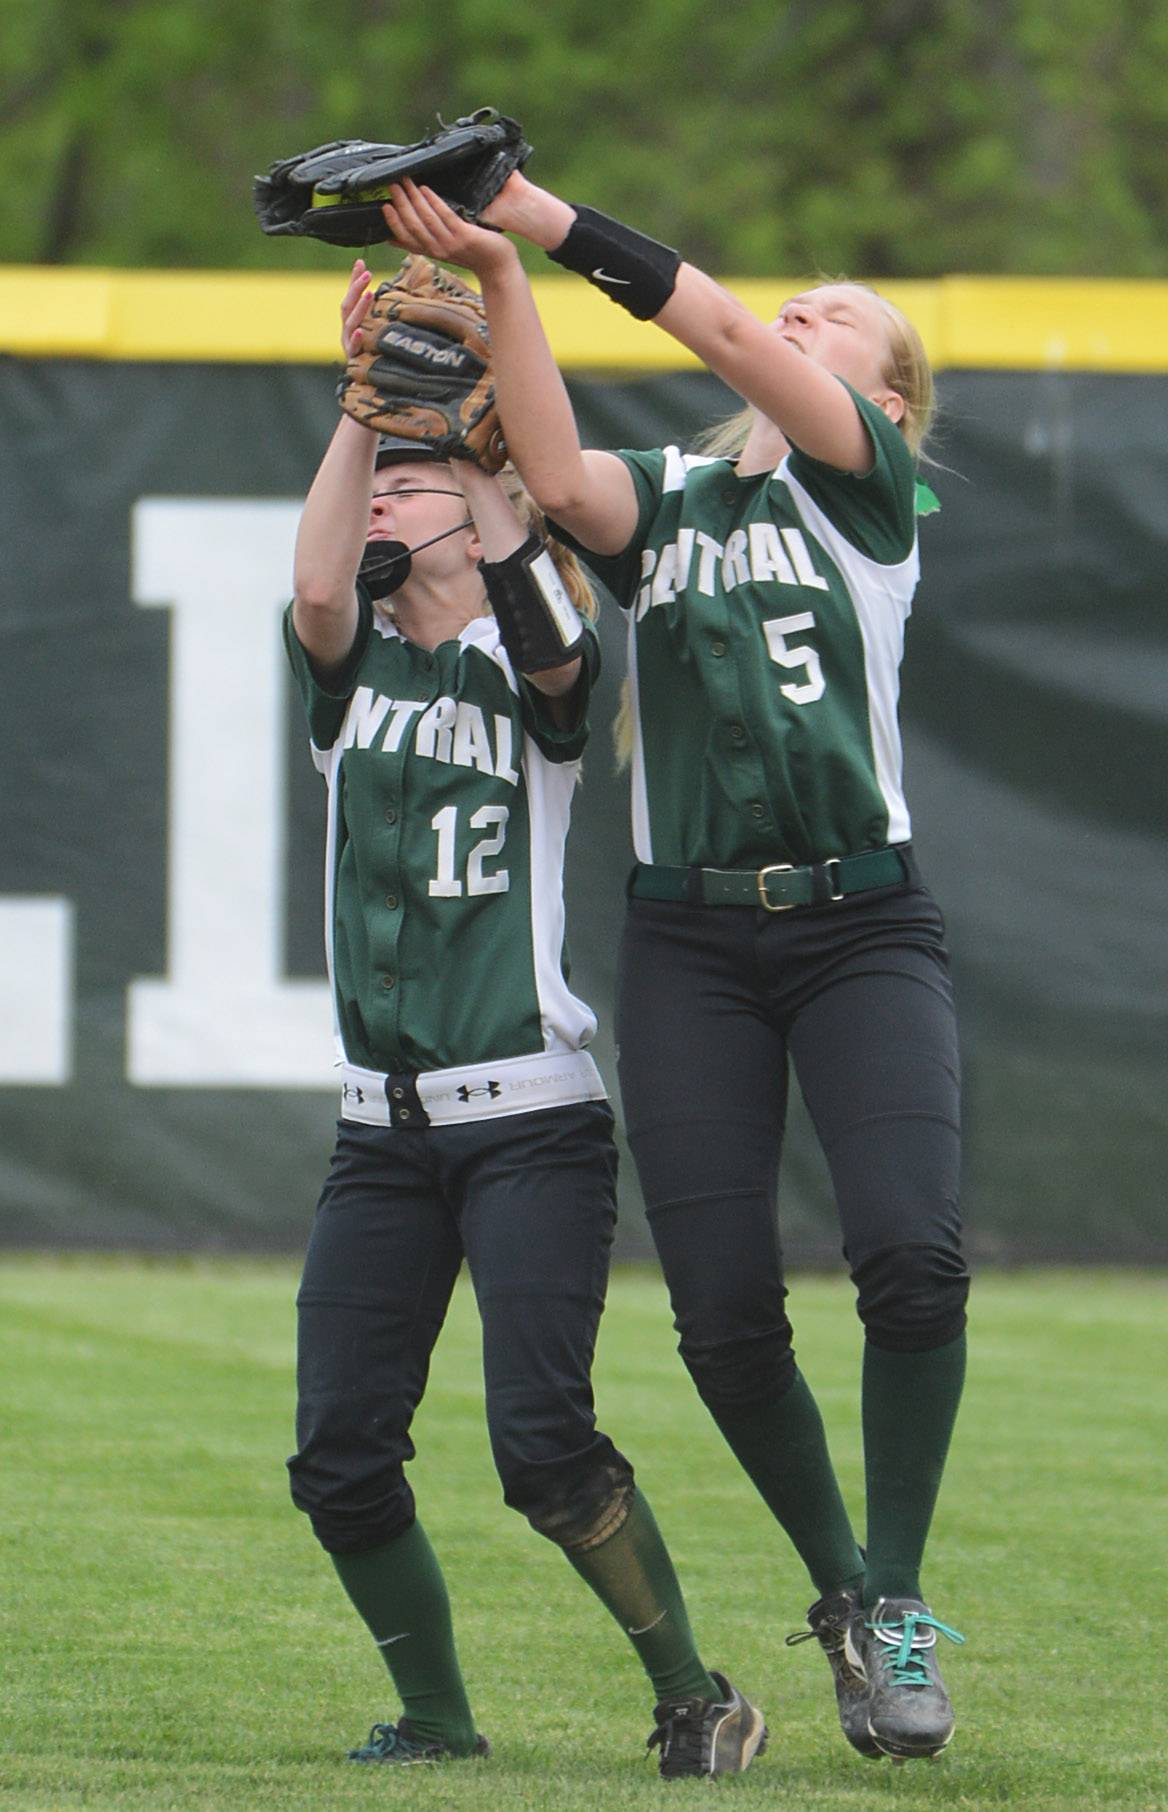 Grayslake Central's Reagen Radke (5) catches a popup next to teammate Shelby White (12) during Monday's game against Grayslake North.